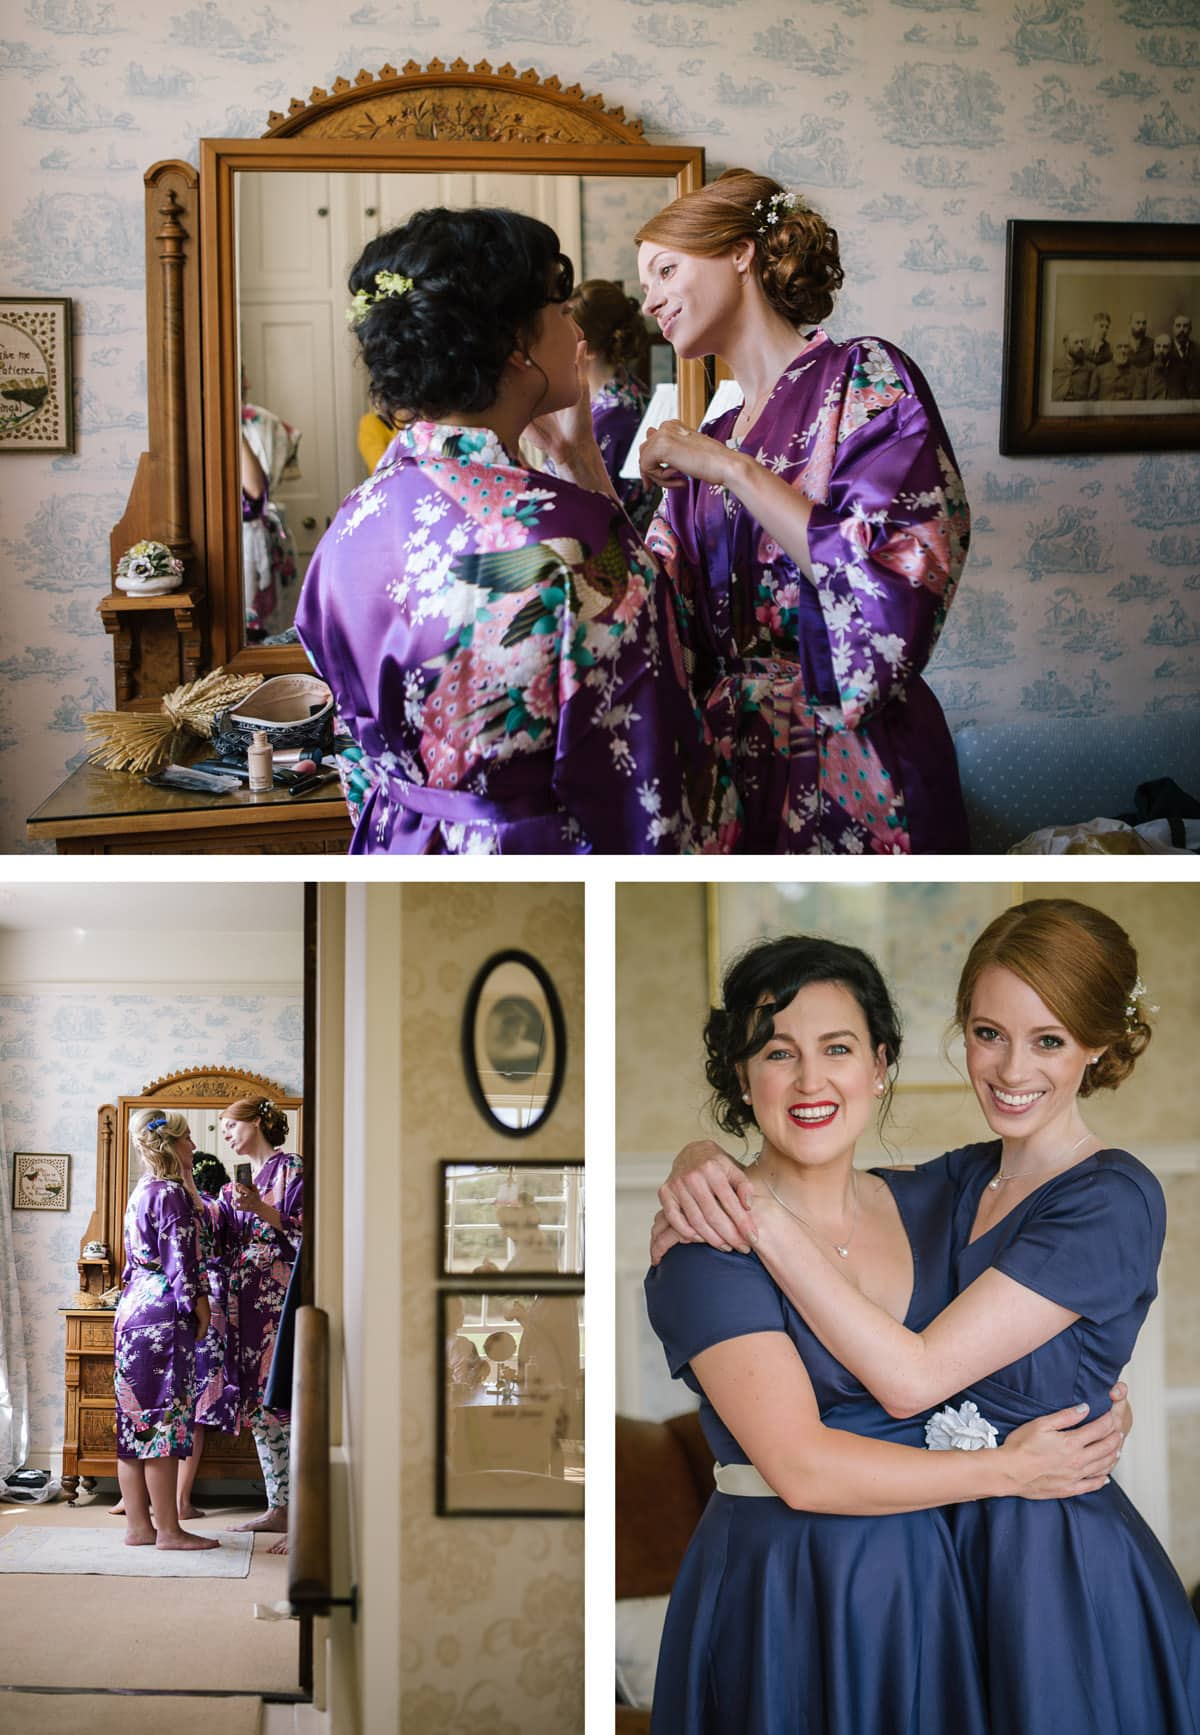 Clockwise from left: A view through the door as the bridesmaids help each other with hair and makeup; one bridesmaid applies blusher to another's cheek; the two bridesmaids are ready for the wedding, wearing navy vintage style gowns.